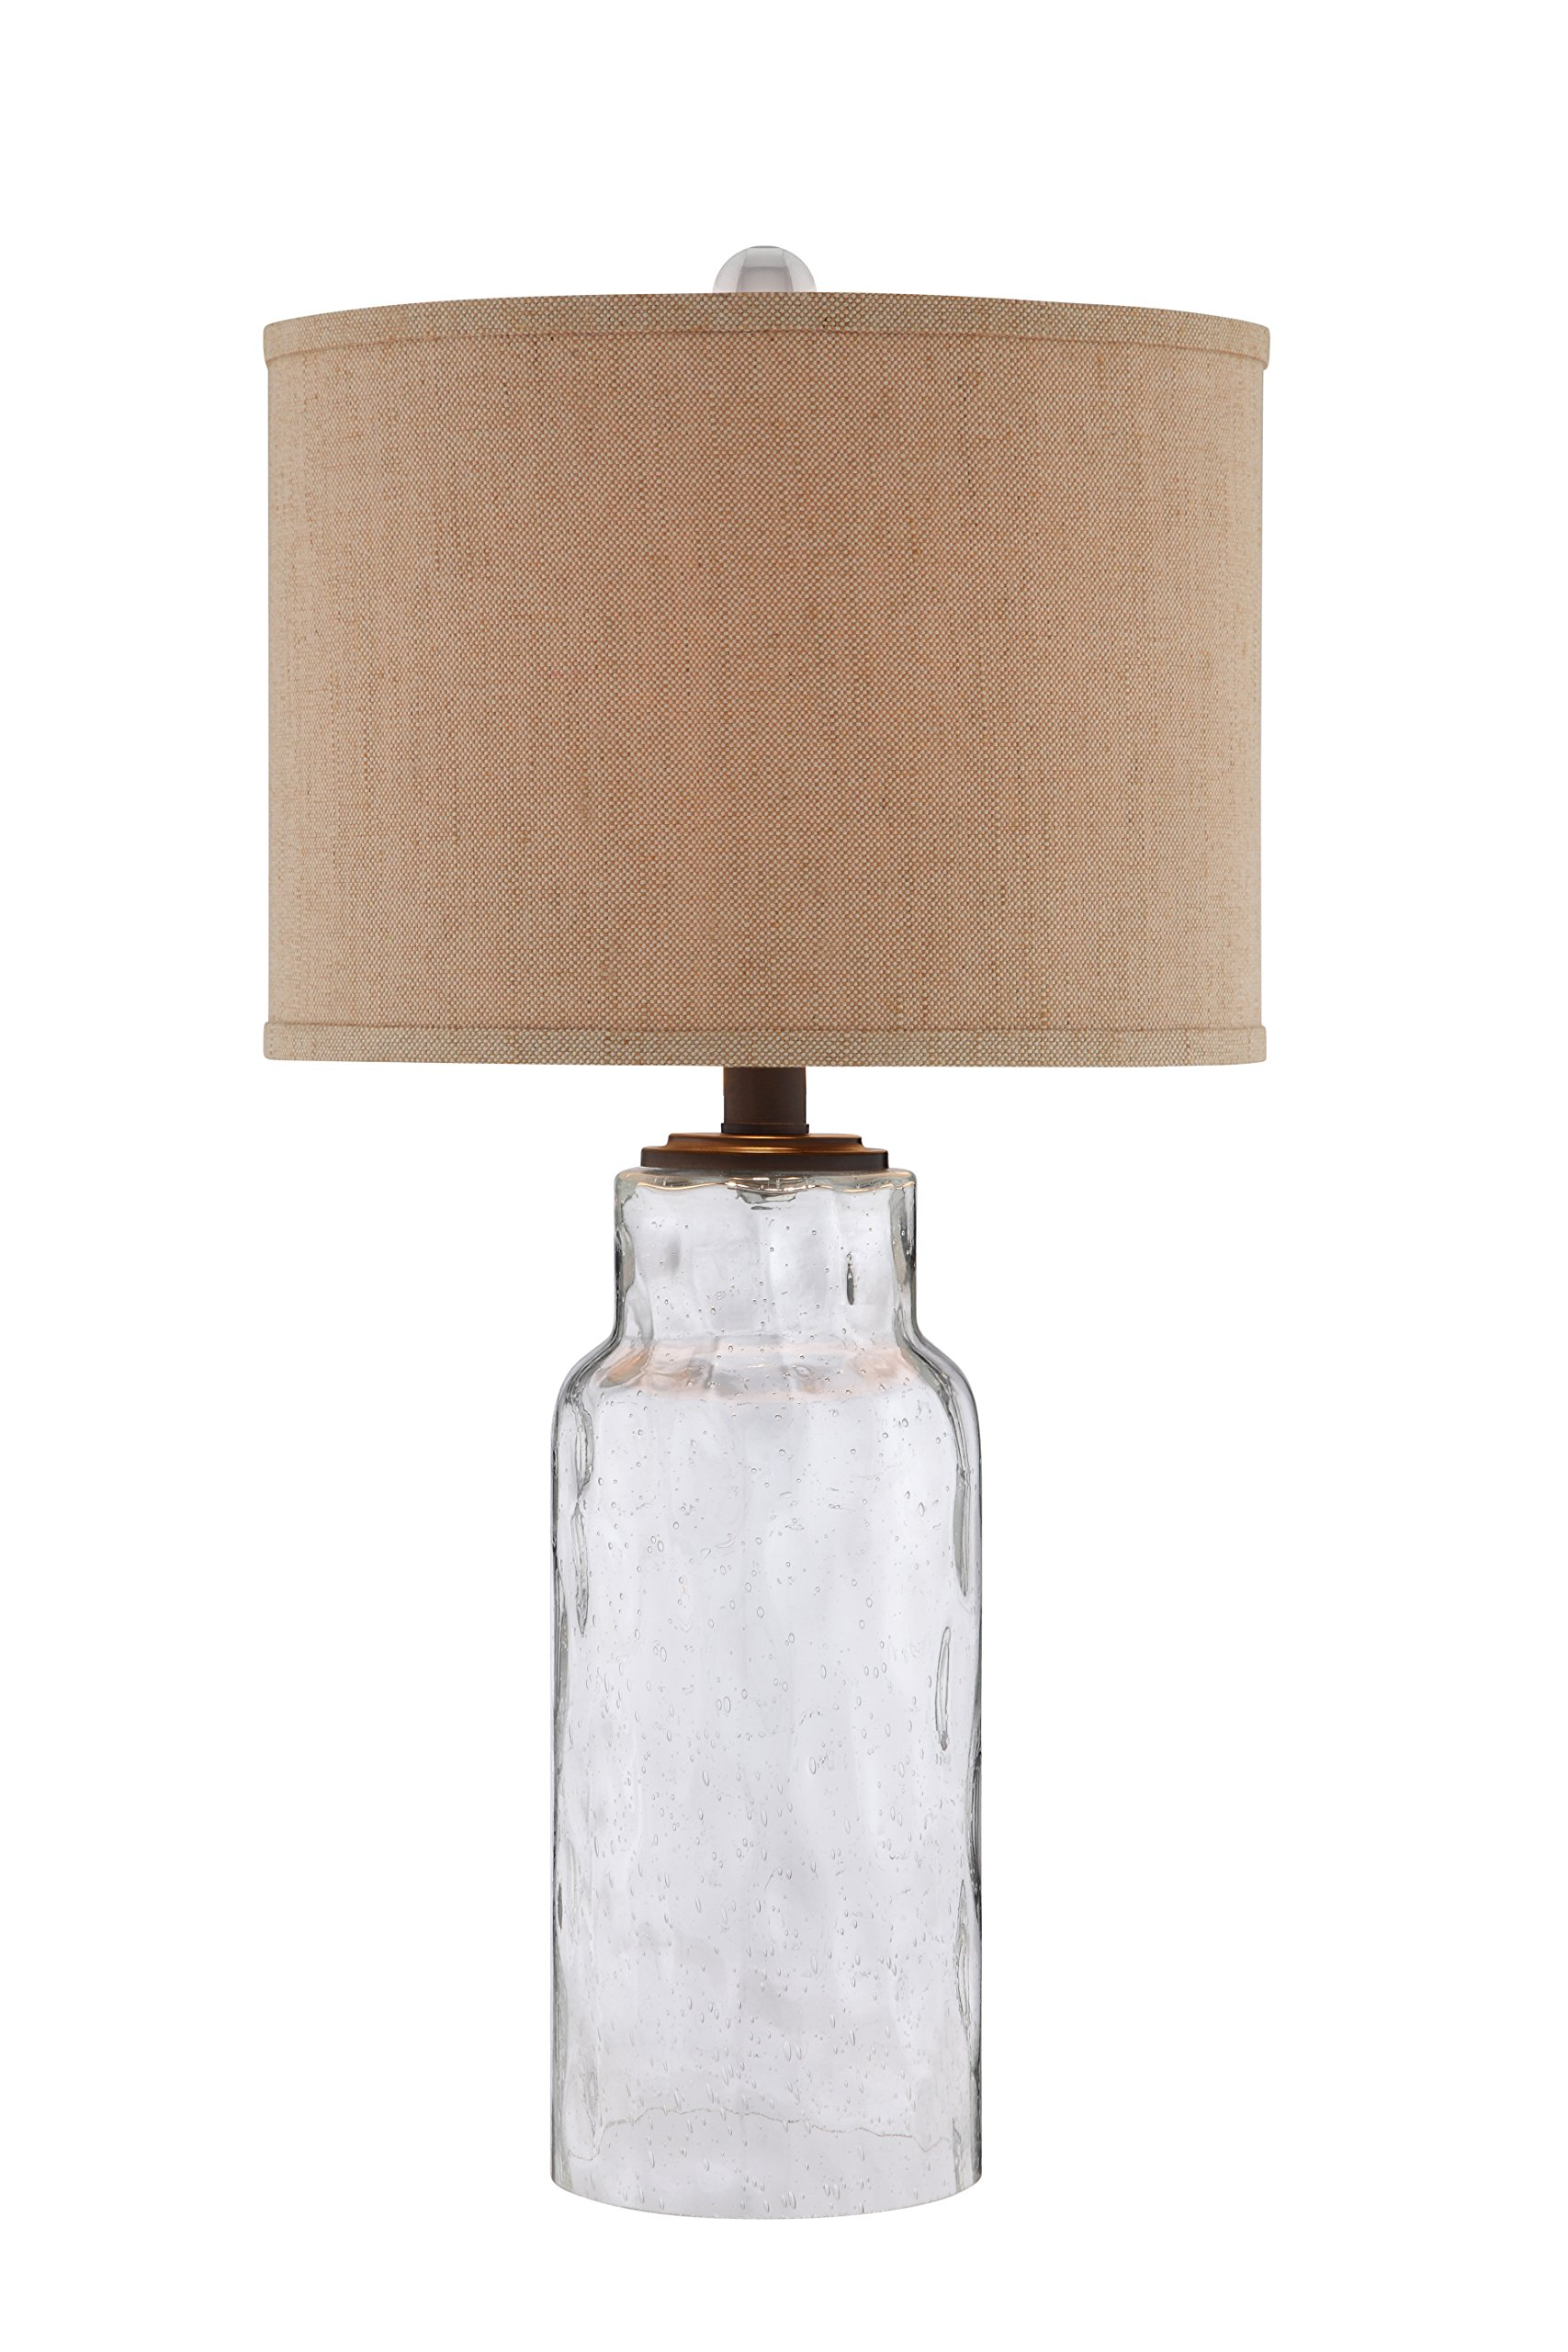 Illuminada 19144-001 Transitional 3-Way Dimpled Glass Table Lamp with Textured Linen Drum Hardback Shade and Bulb, 29-Inch, Clear